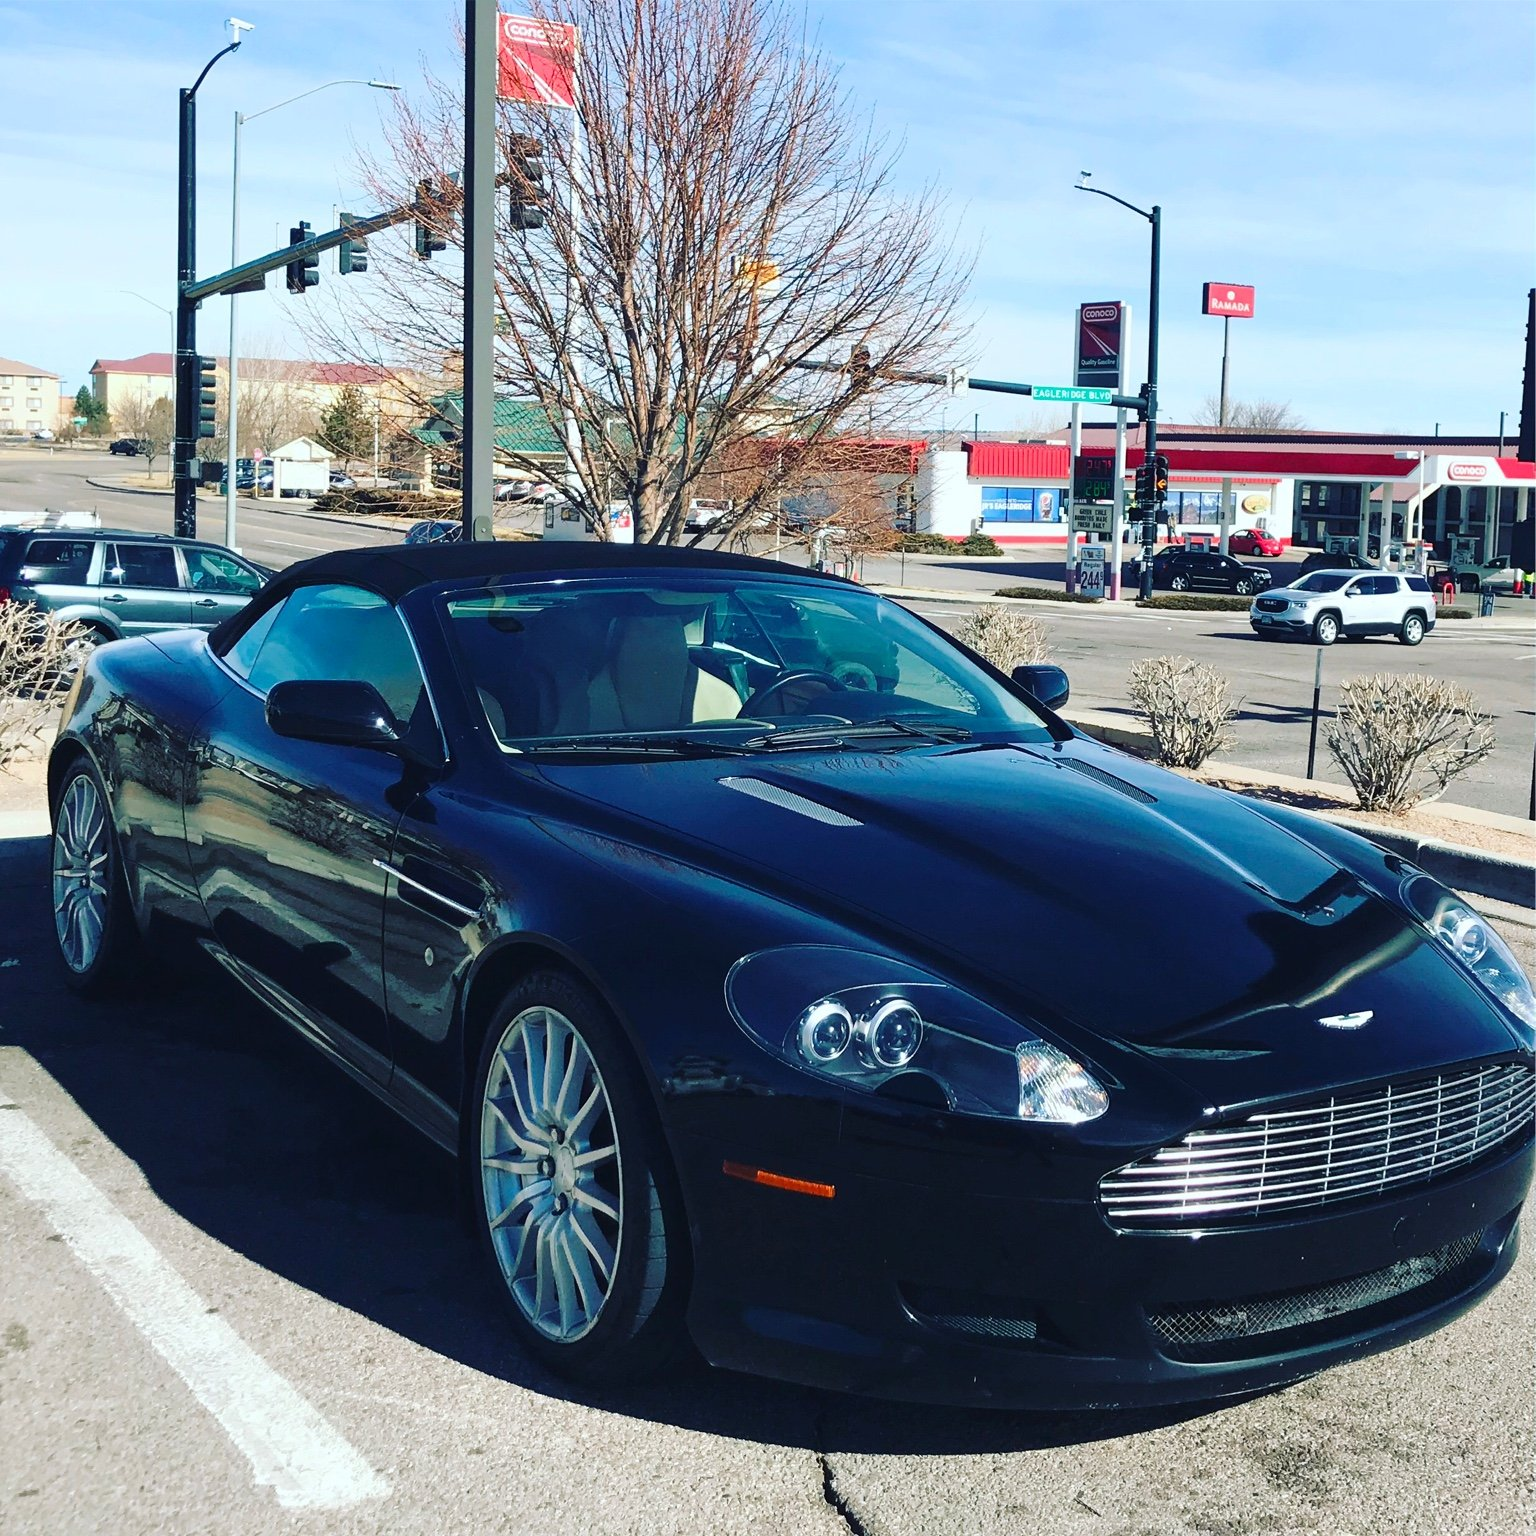 Any Aston Owners? I'm Considering A DB9 Volante